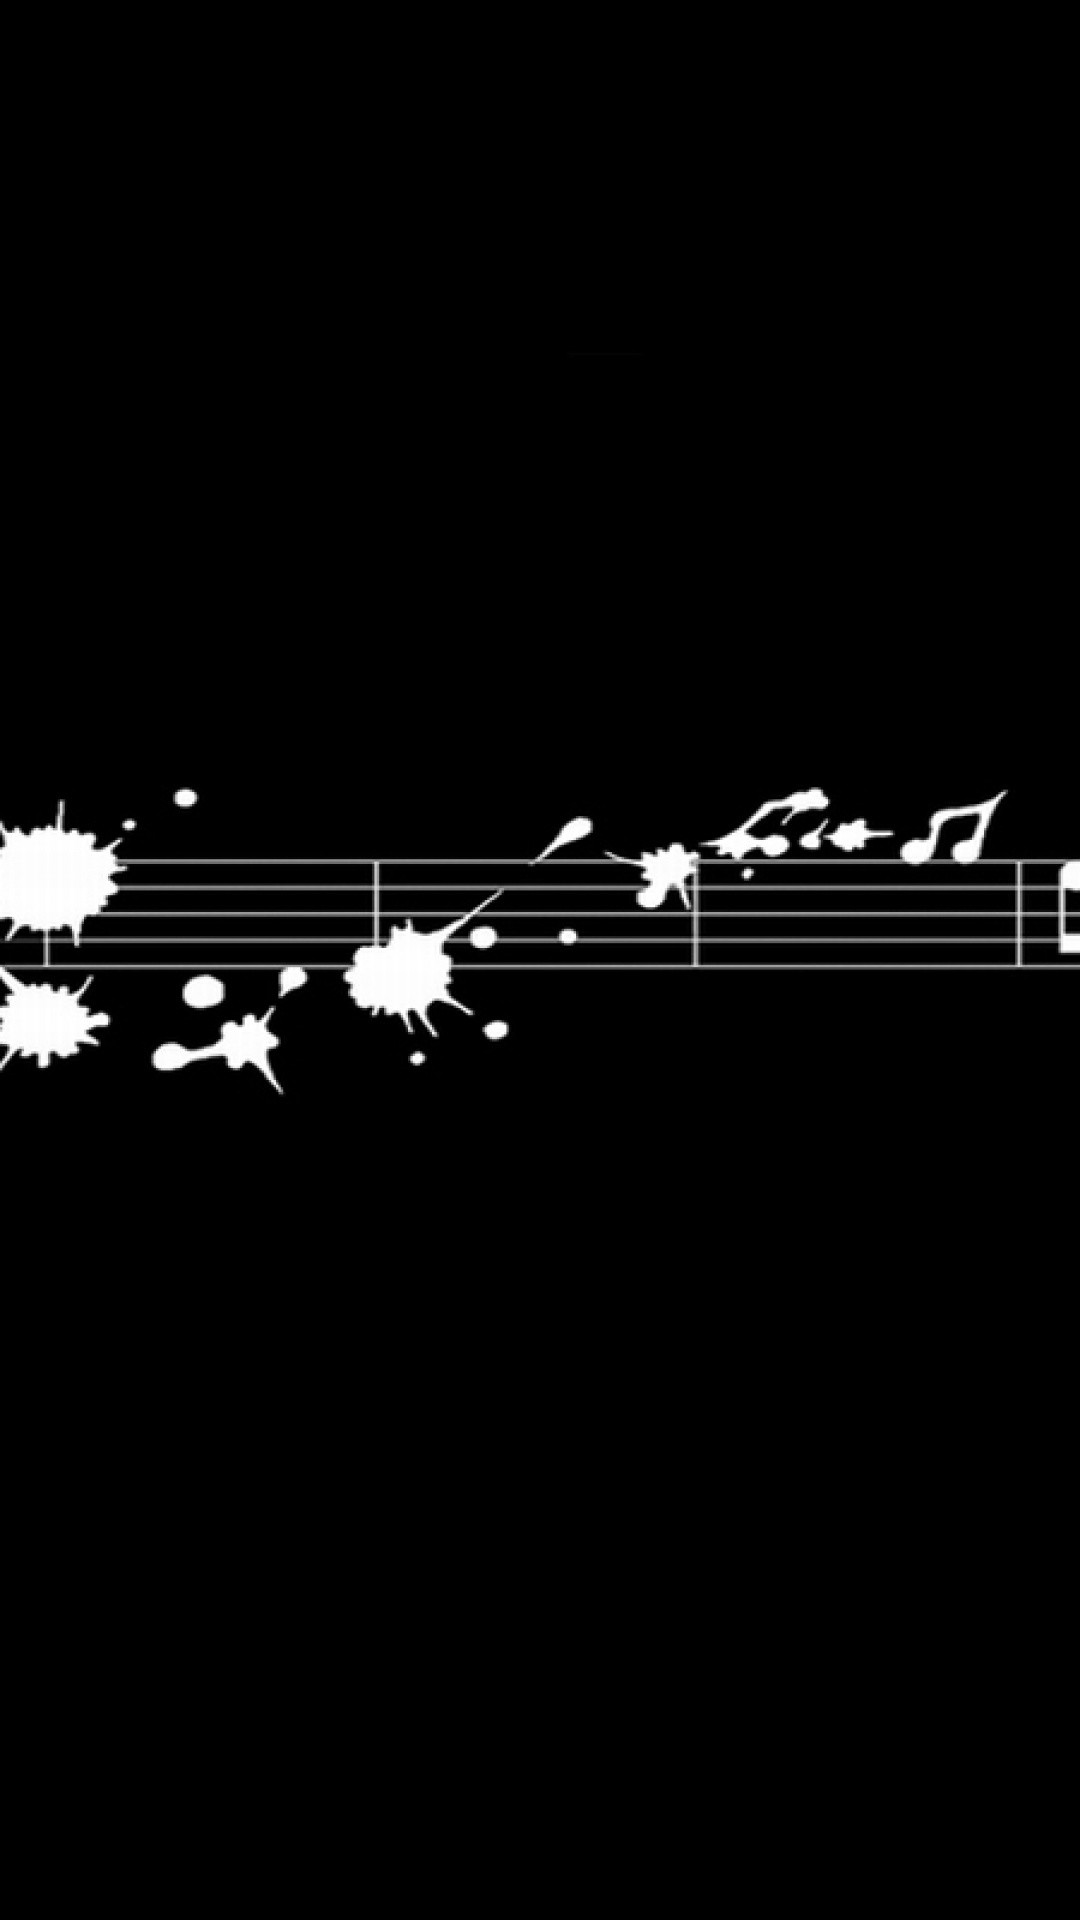 Musical Note Wallpaper 71 Images